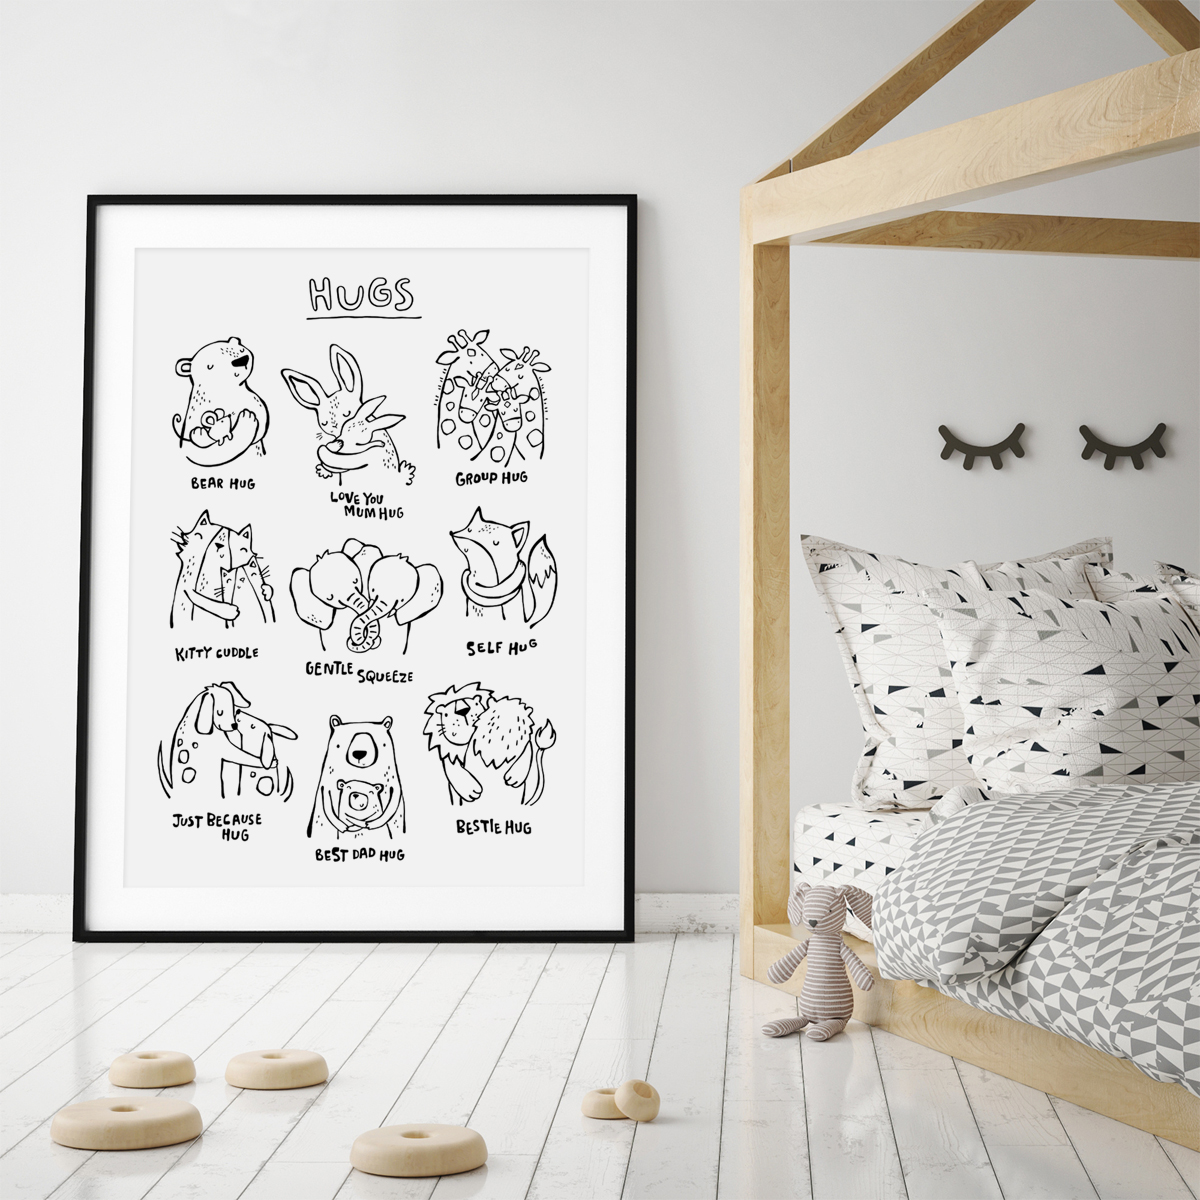 Hugs inky animals frame